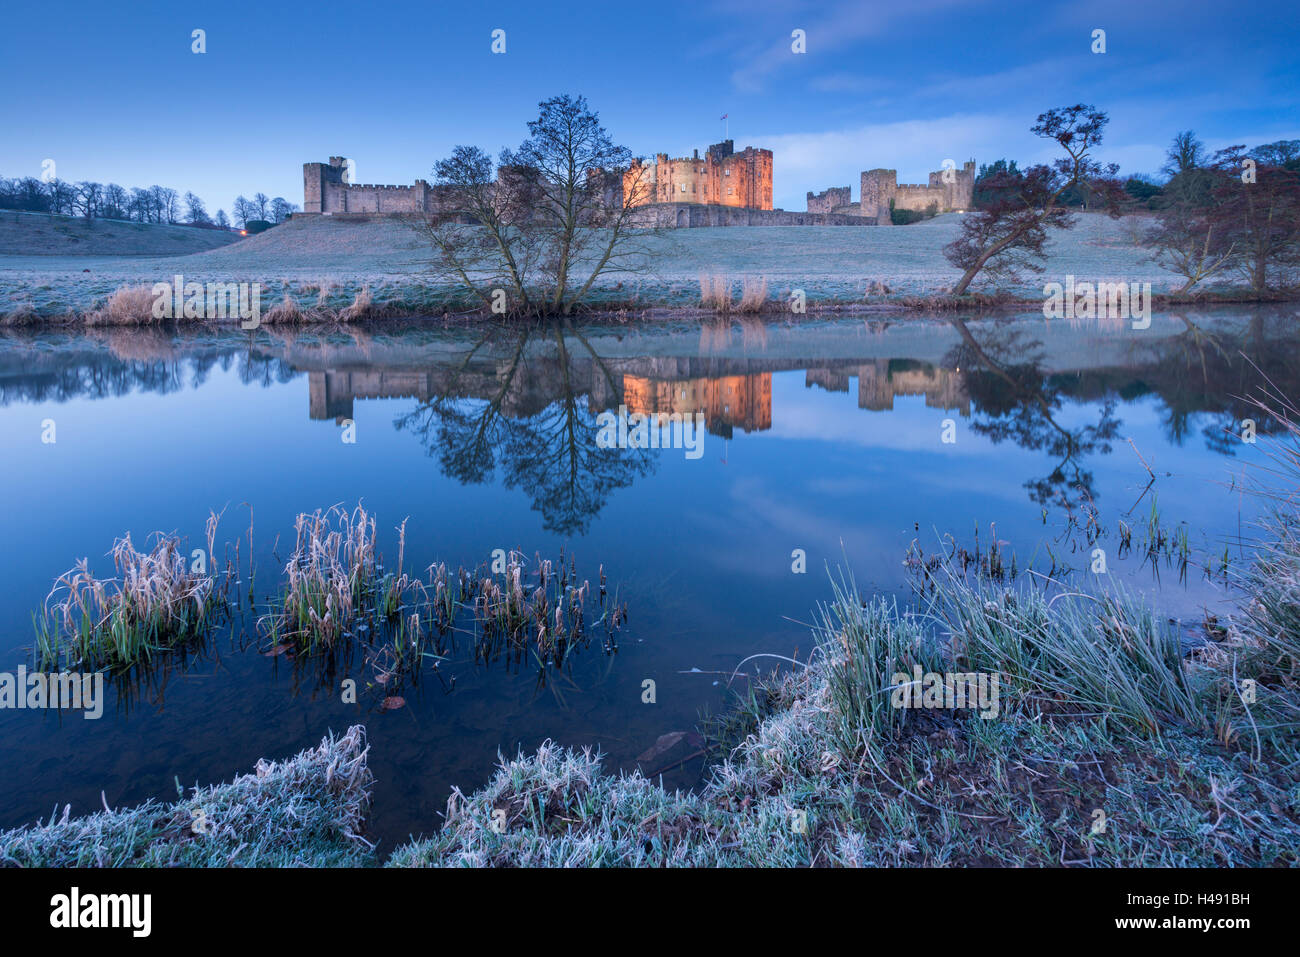 Alnwick Castle reflected in the River Aln on a frosty winter morning, Northumberland, England. Winter (March) 2014. - Stock Image